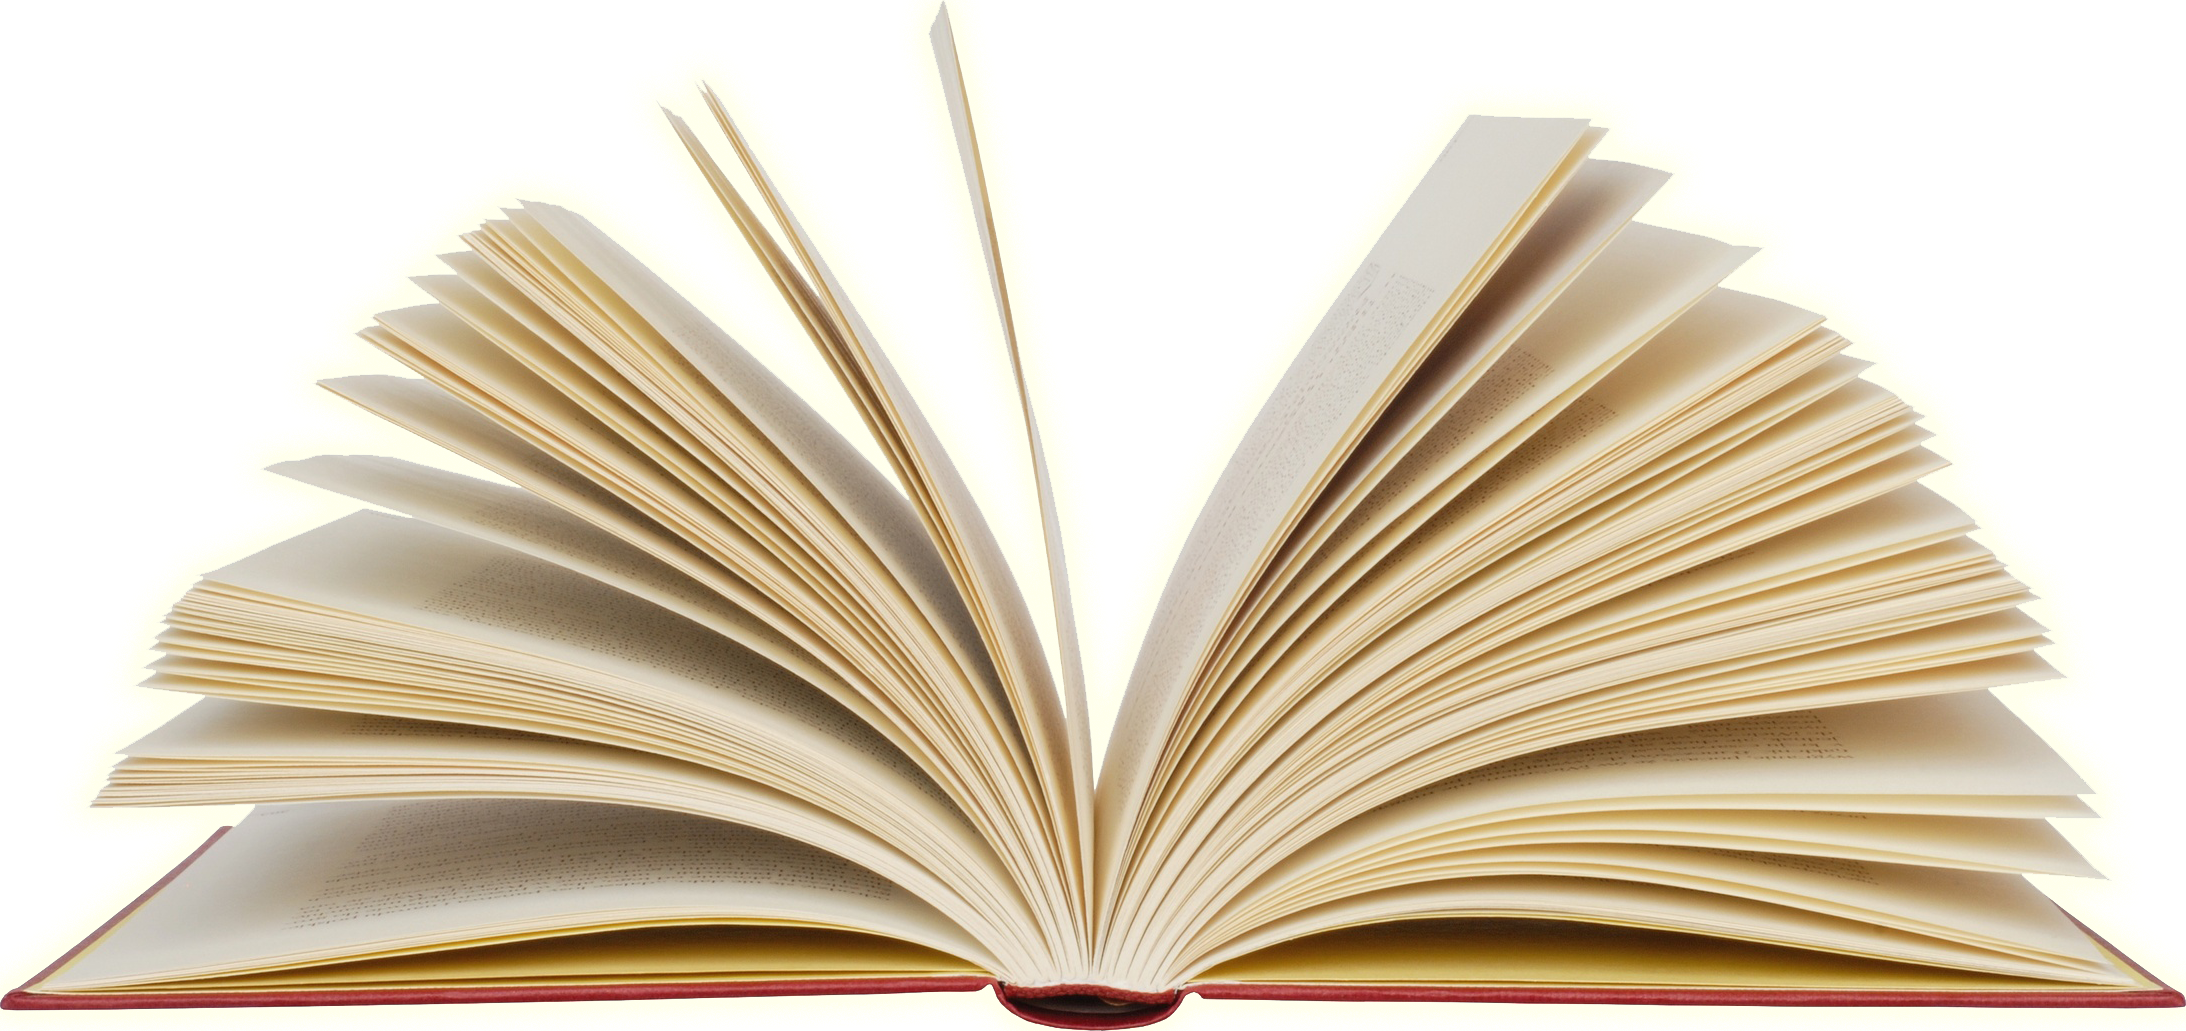 Open Book Transparent Background PNG.